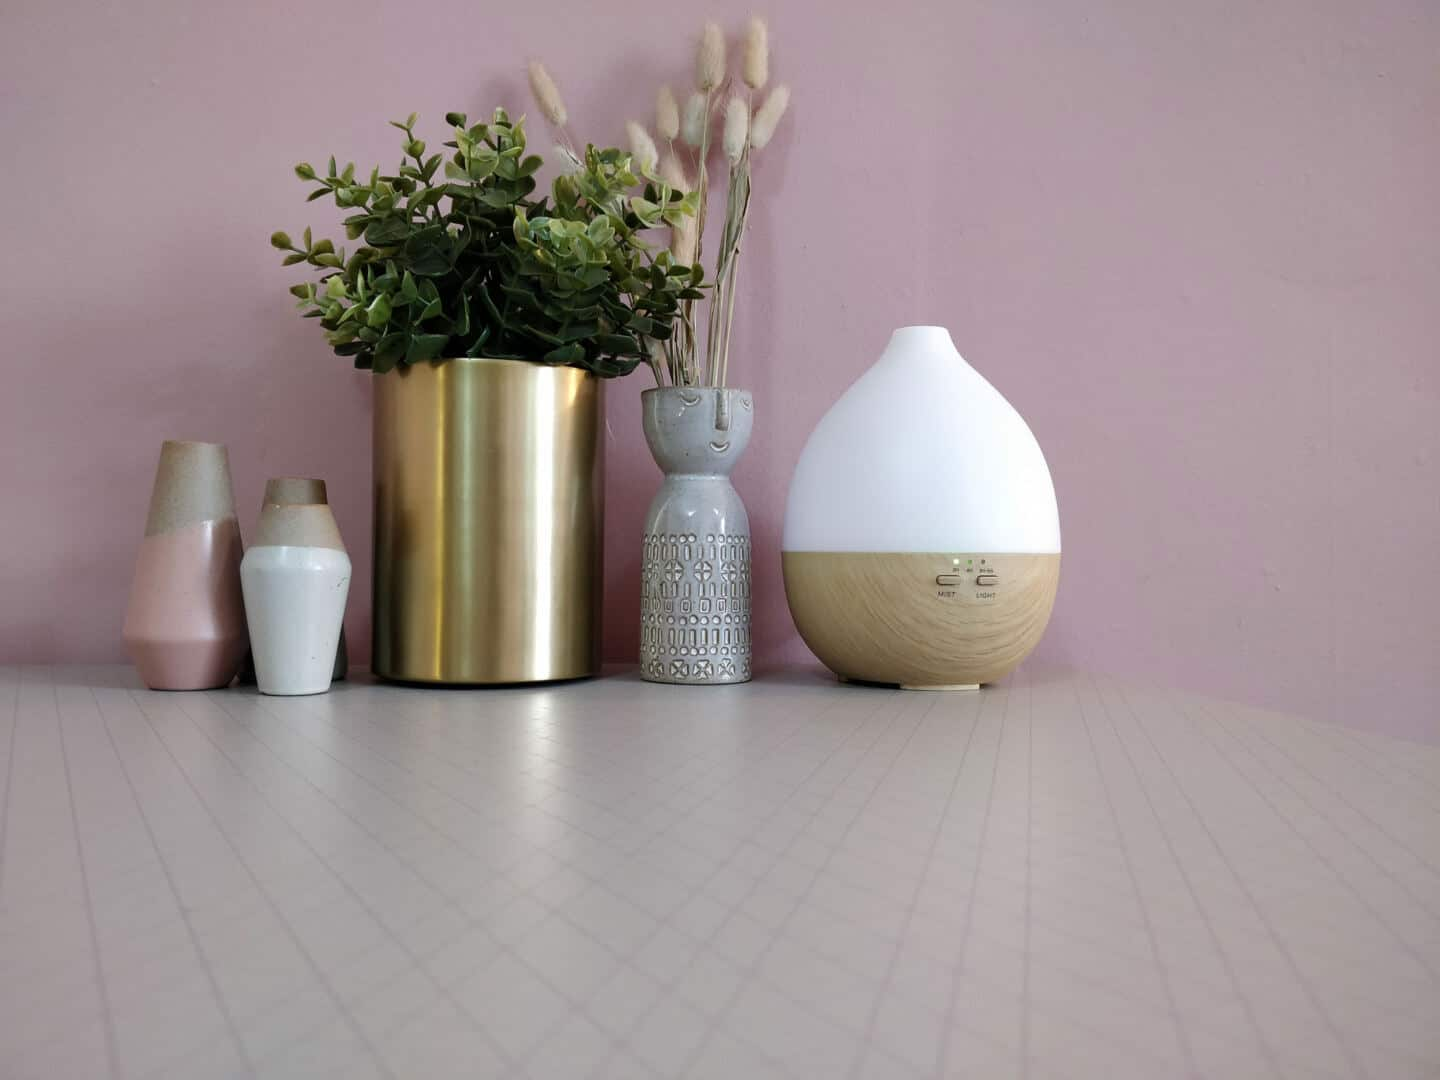 Smellacloud aroma diffuser on a table with plants and vases